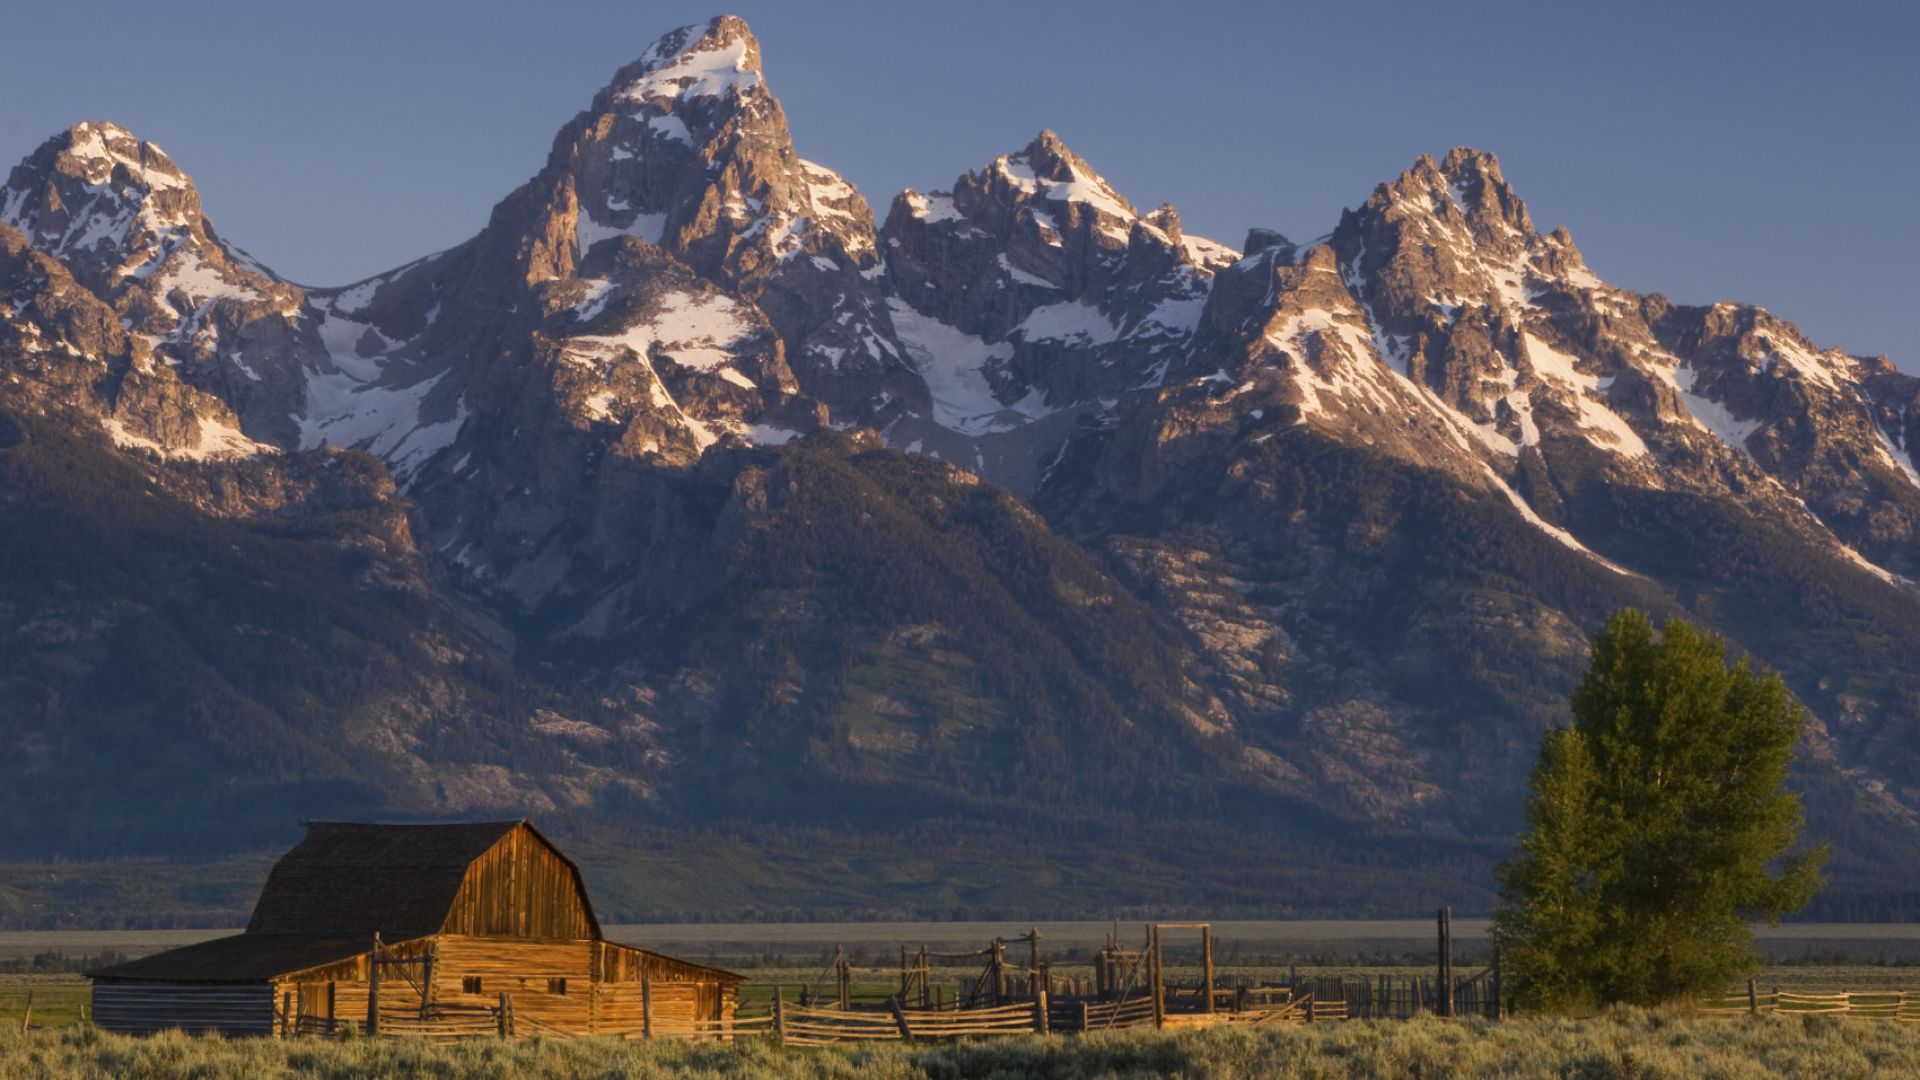 Jackson hole lodging vacation rentals jackson hole wy for Cabin rentals in jackson hole wy